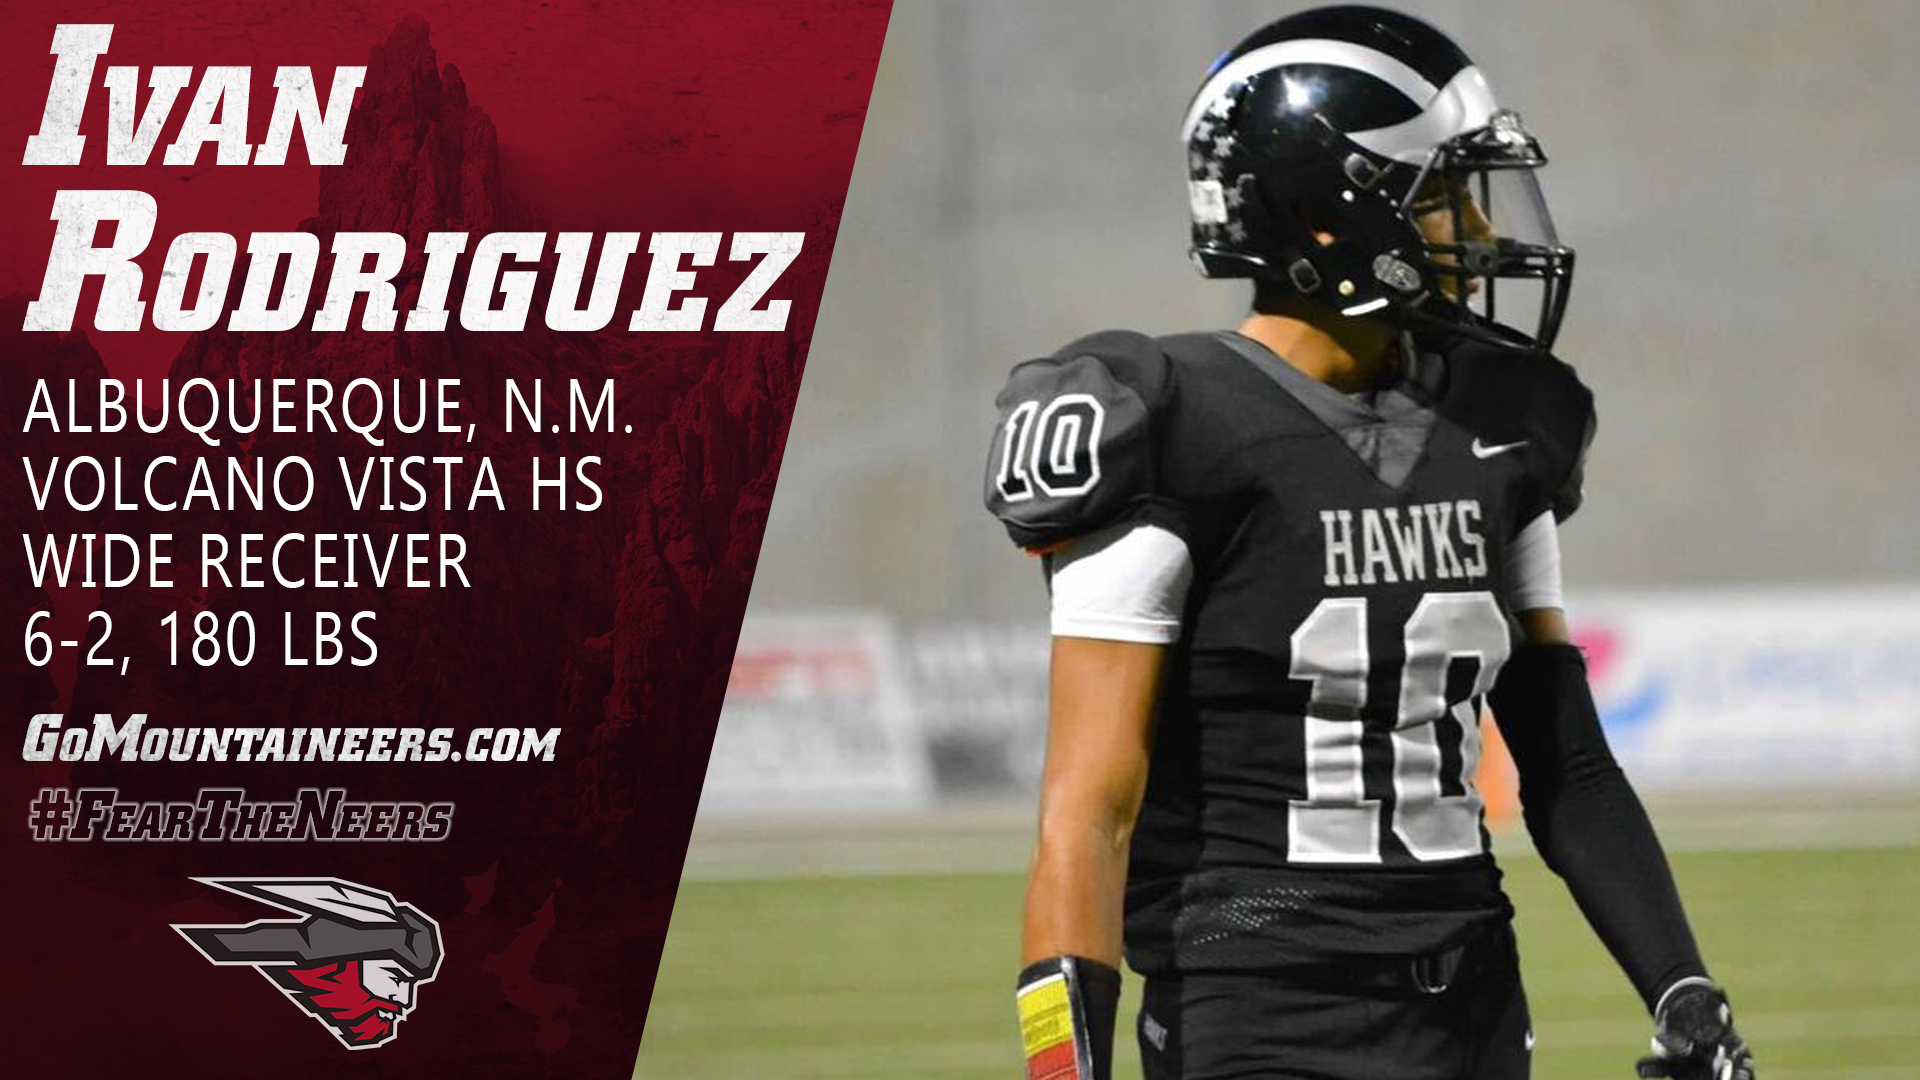 Ivan Rodriguez   2020 National Signing Day   Football   Western 1920x1080